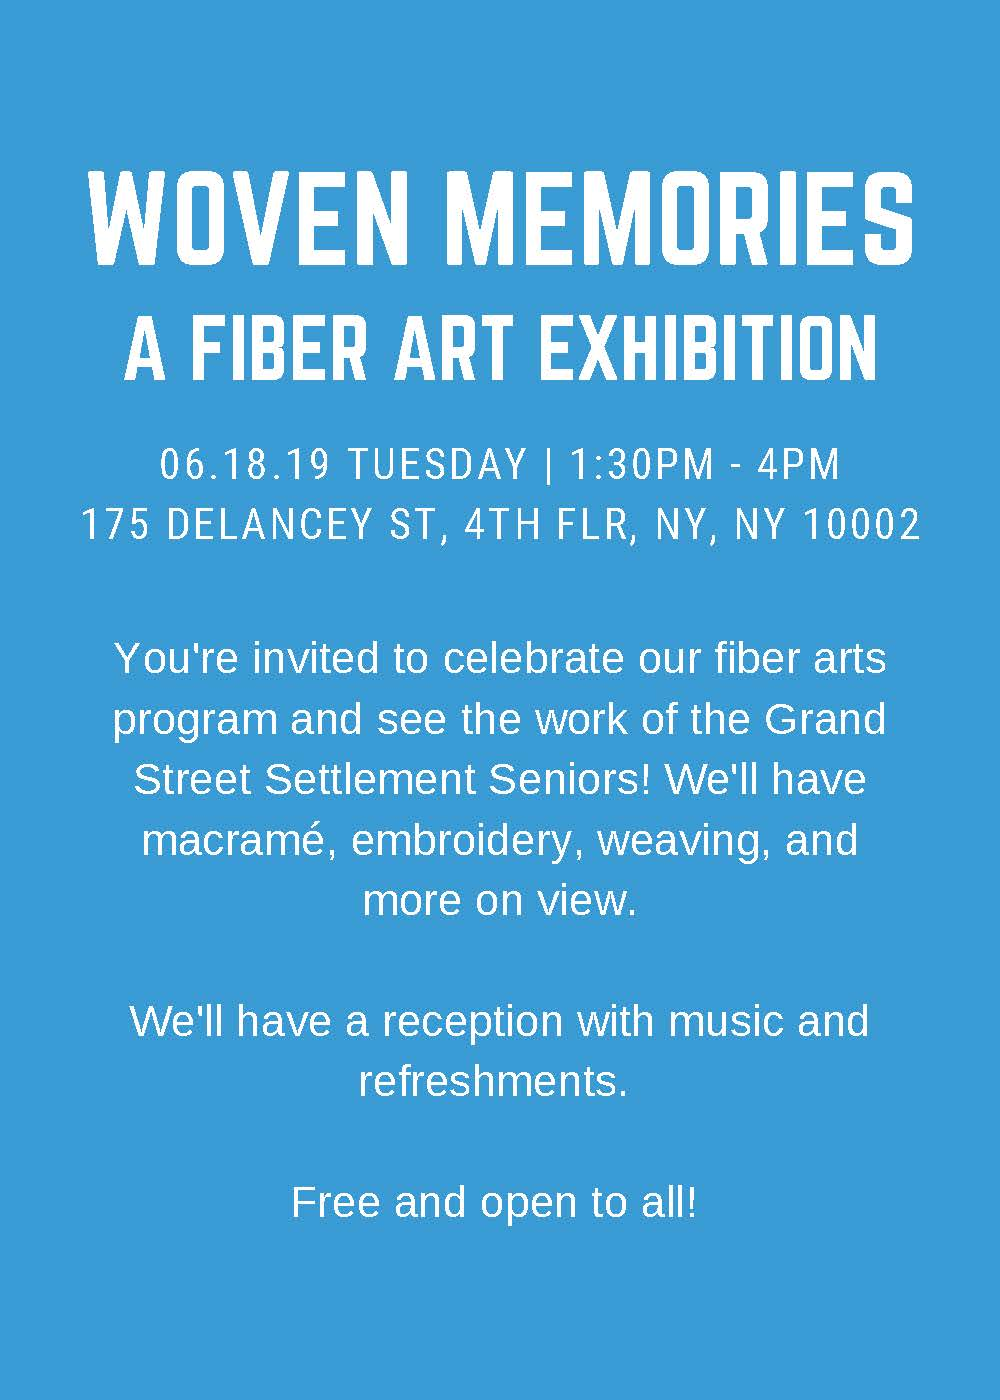 WOVEN MEMORIES Exhibit Flyer_Page_2.jpg